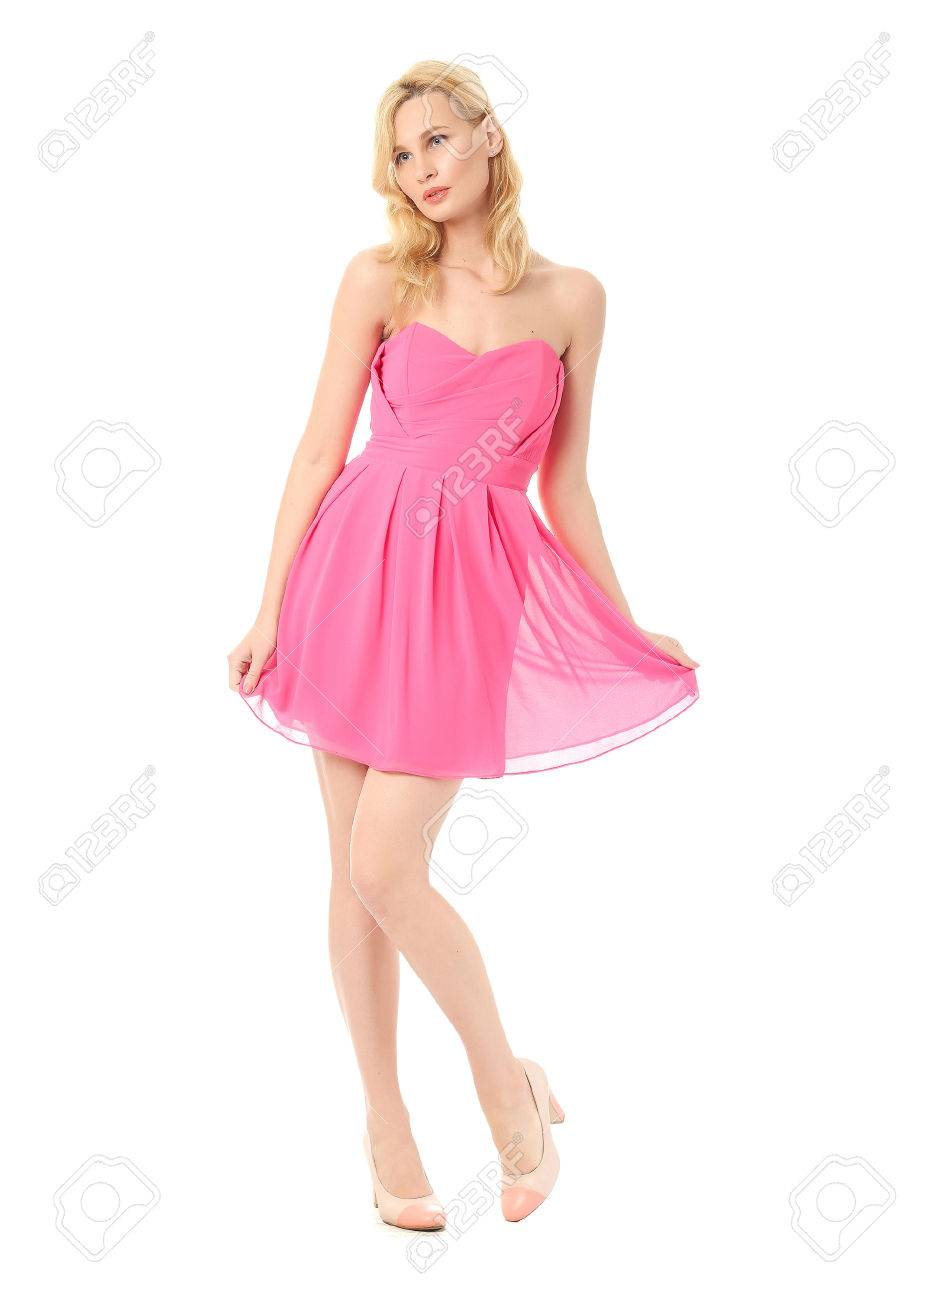 Fashion Model Wearing Pink Prom Dress Stock Photo, Picture And ...